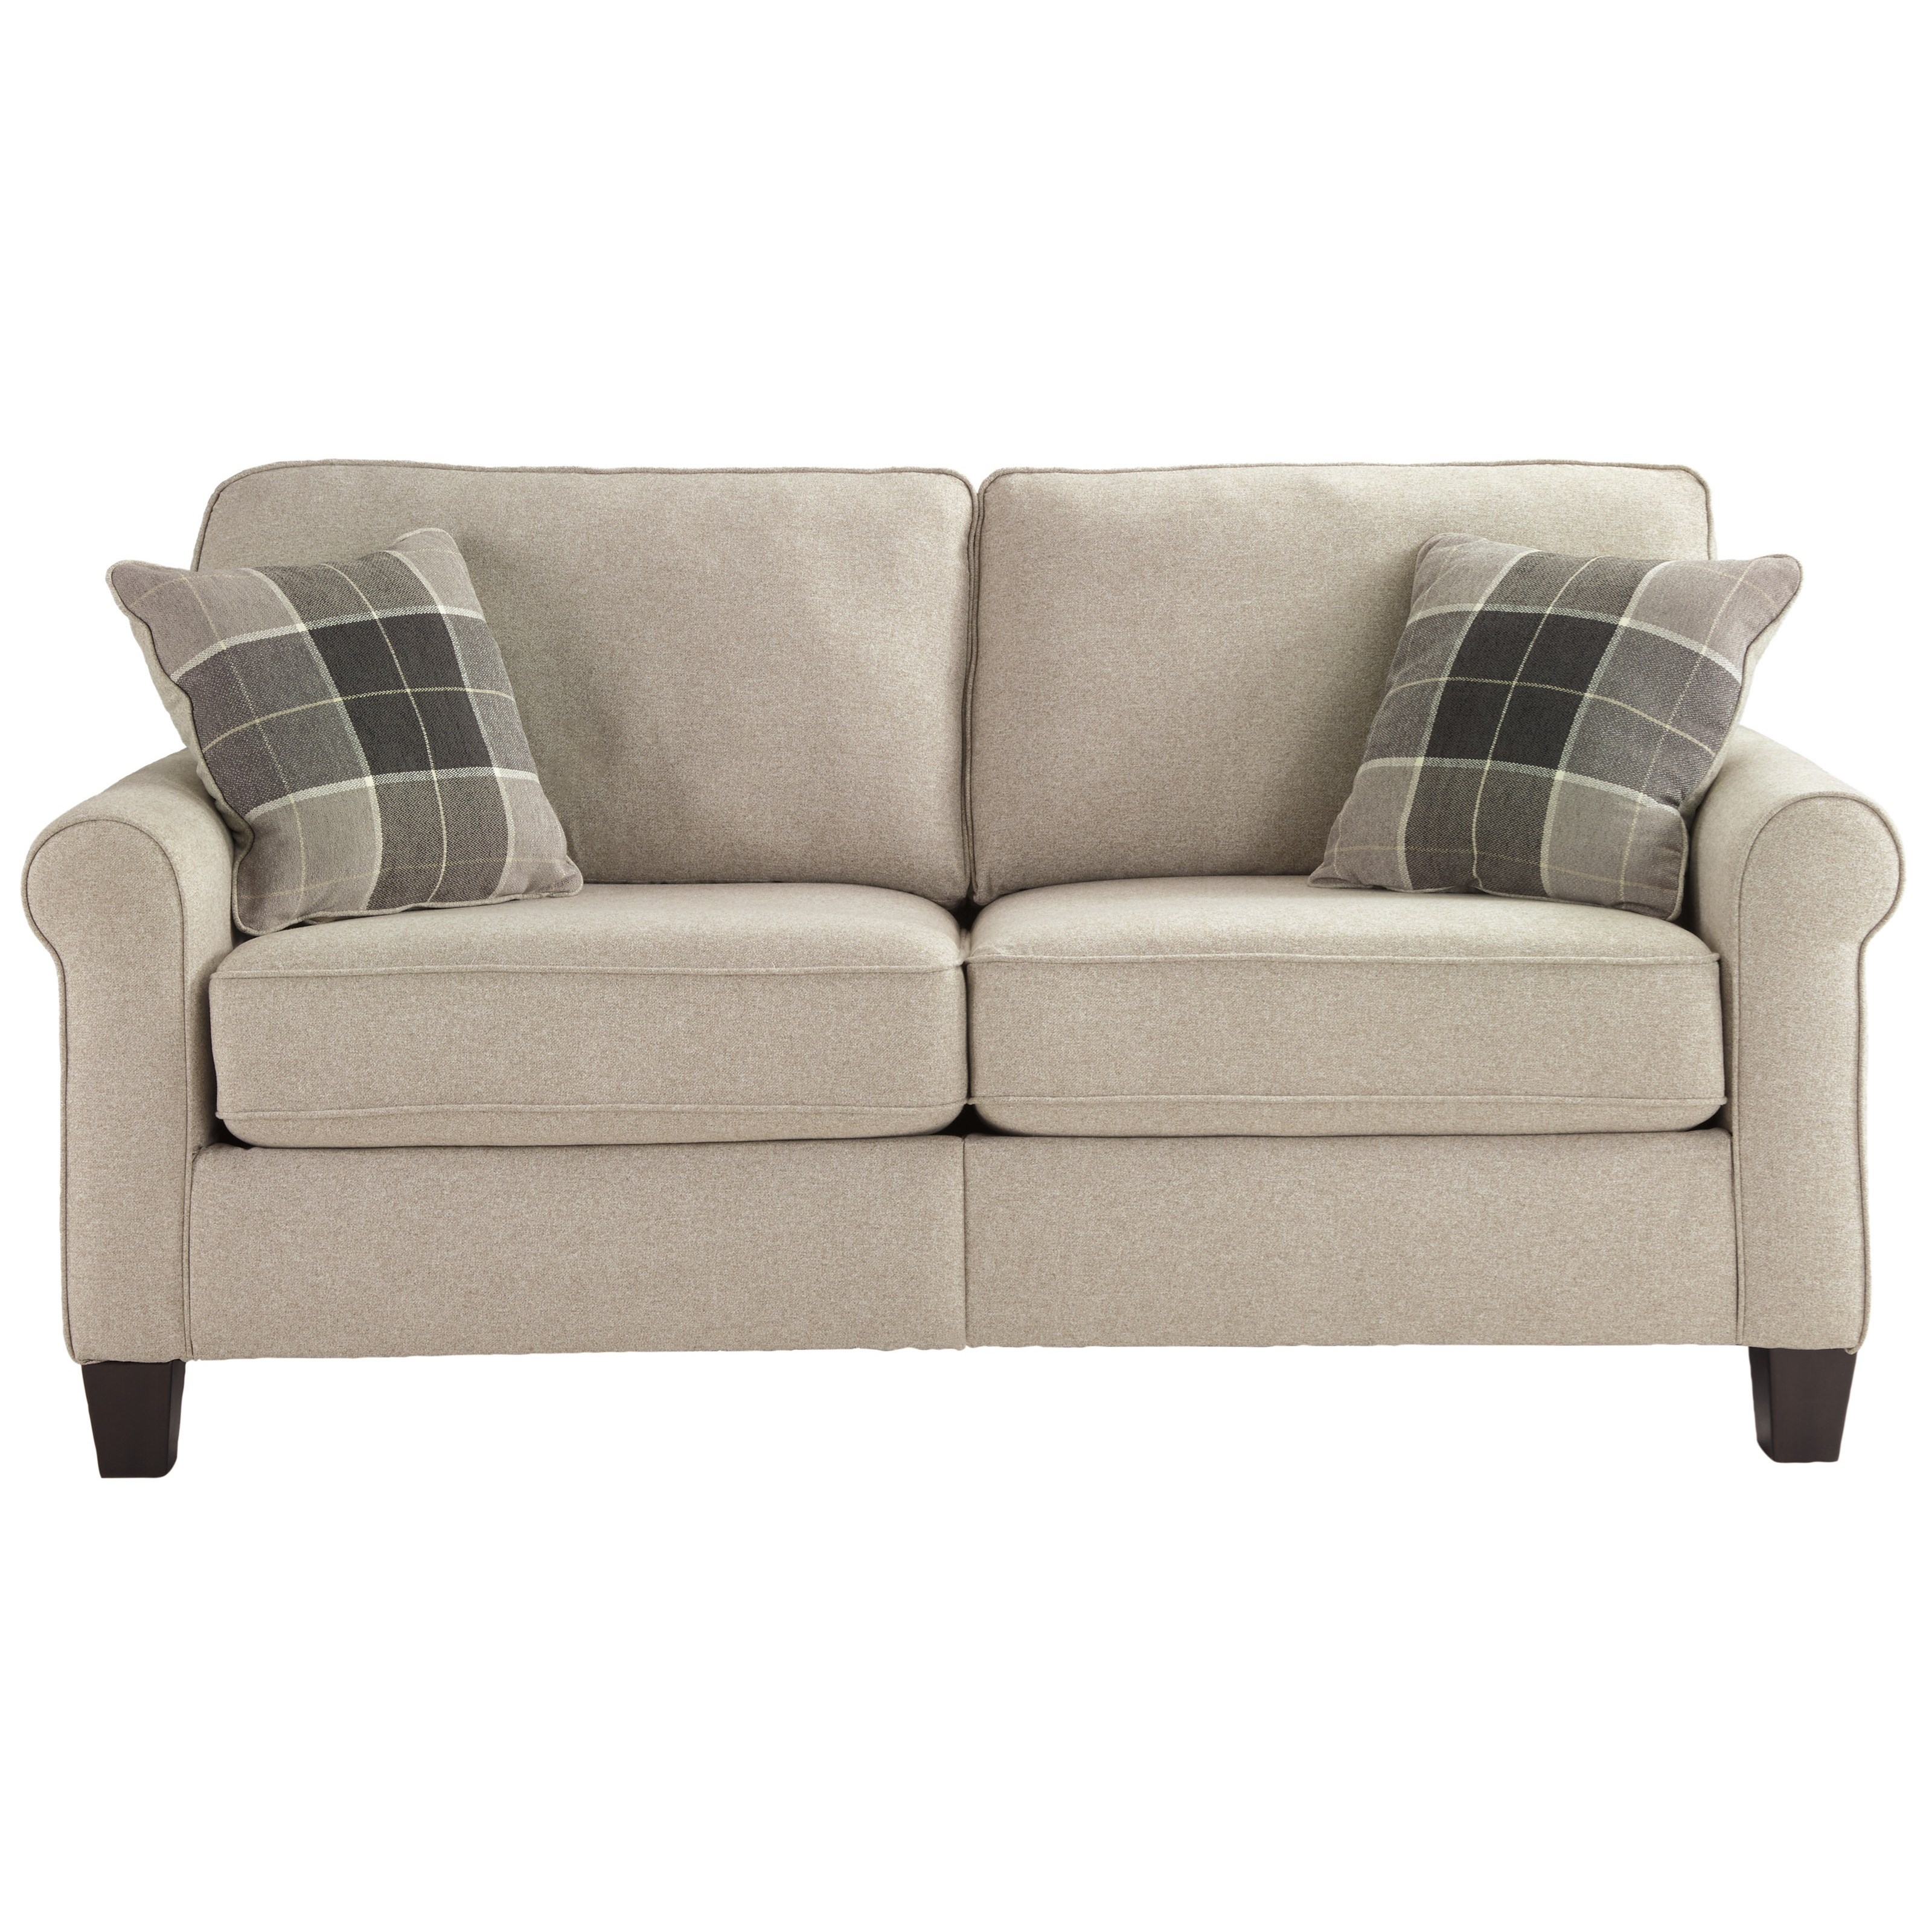 Lingen Loveseat by Signature Design by Ashley at Lapeer Furniture & Mattress Center